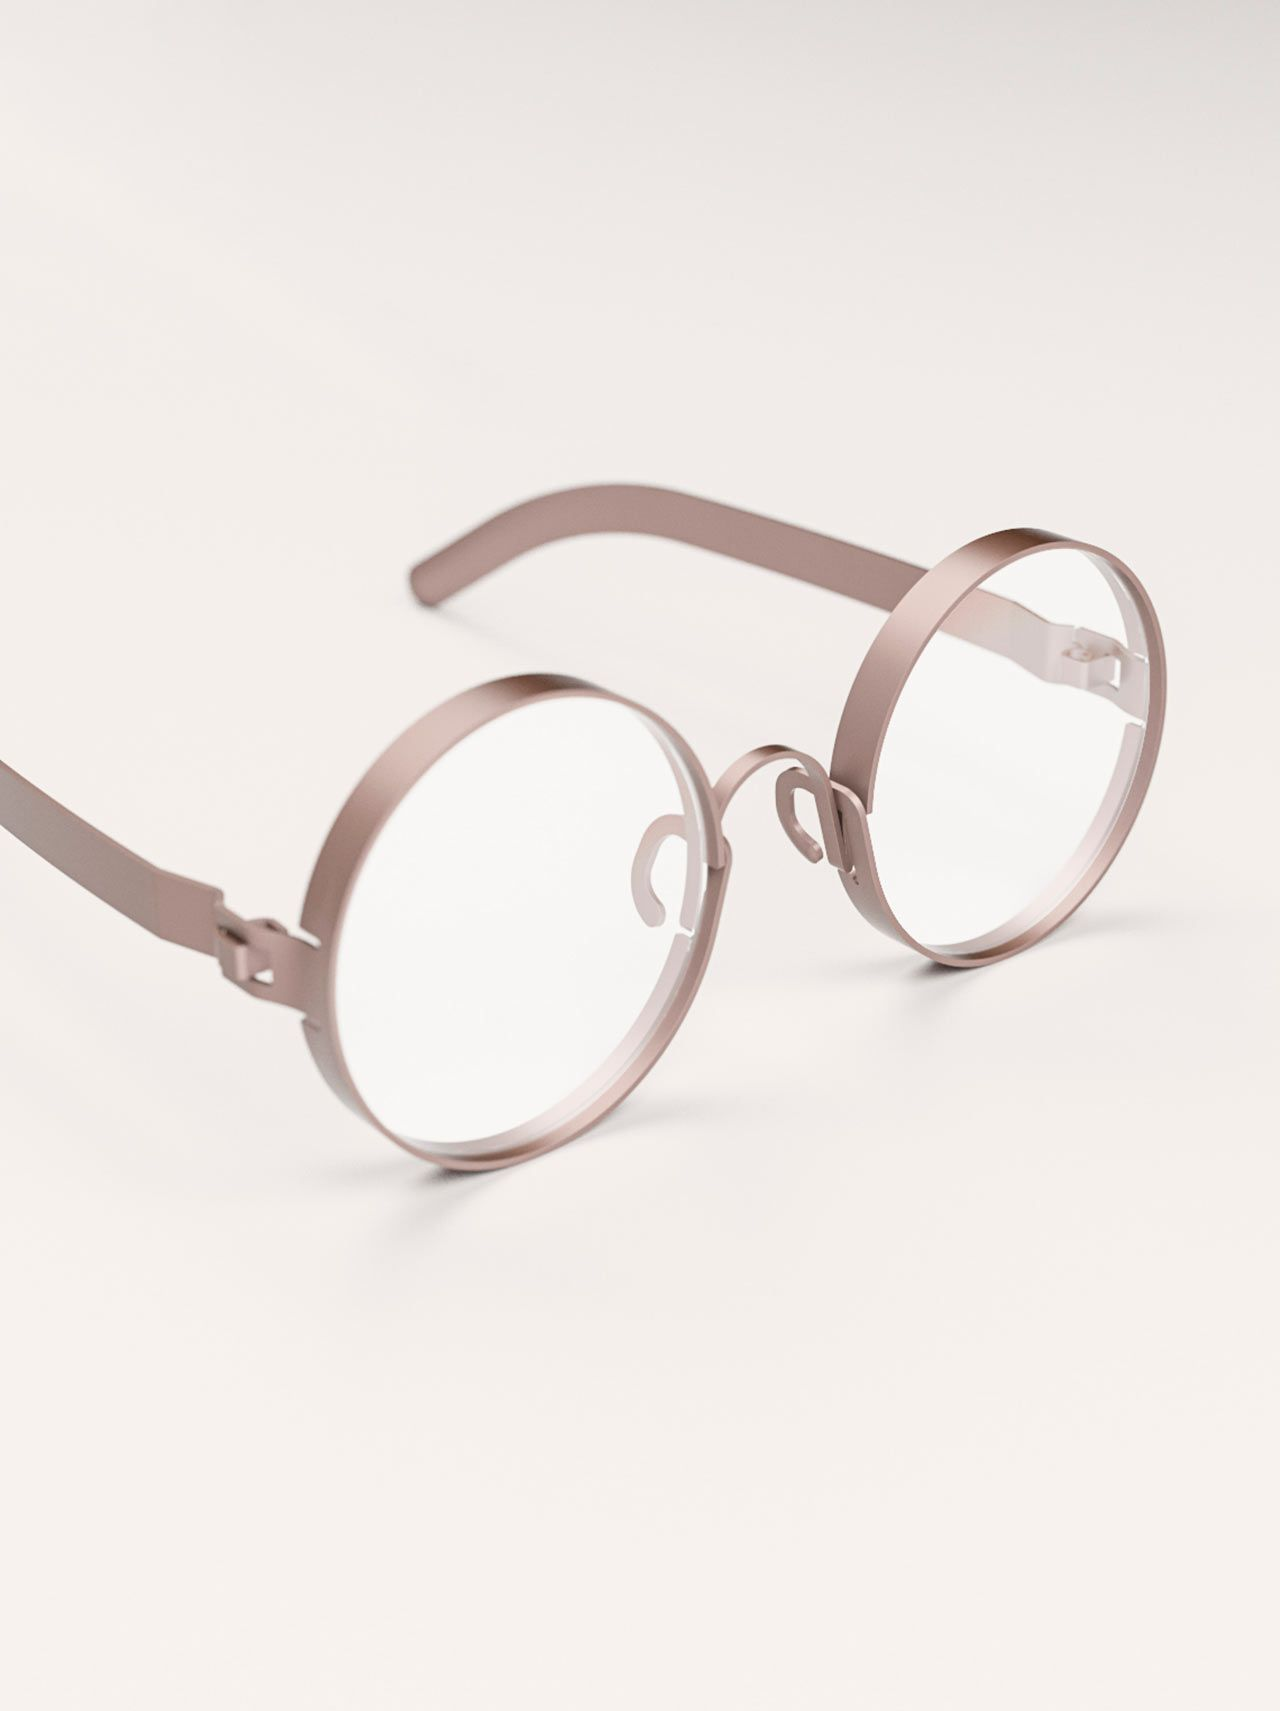 FRAME  Eyeglasses Cut From Sheet Metal to Reduce Waste   Lunettes ... 48ec317ede27